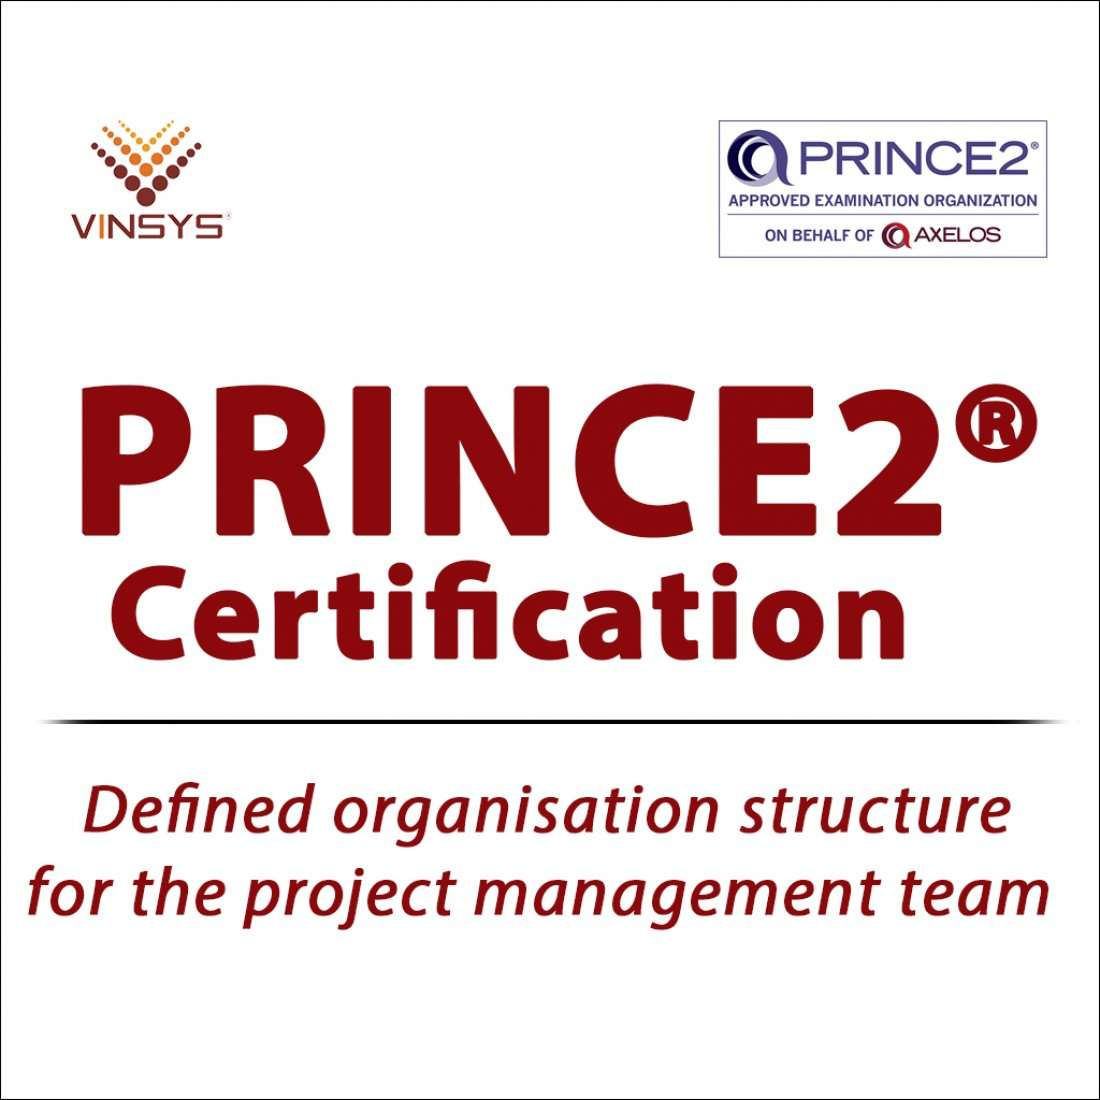 Prince2 foundation exam cost in india prince2 certification cost prince2 foundation exam cost in india prince2 certification cost 1betcityfo Choice Image